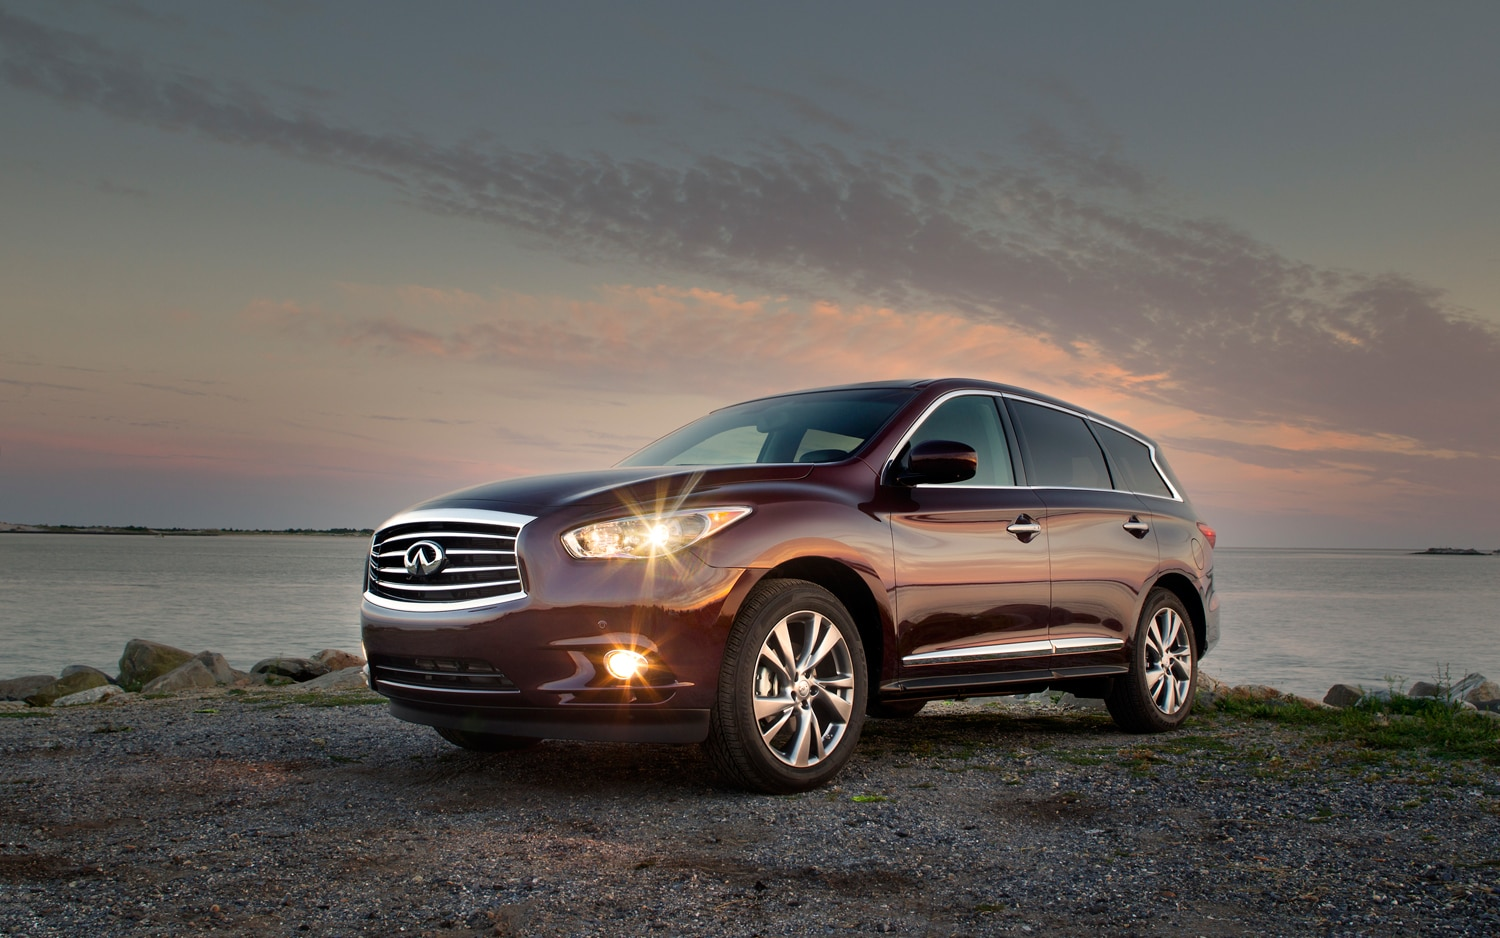 2013 Infiniti JX35 Front Left Side View1